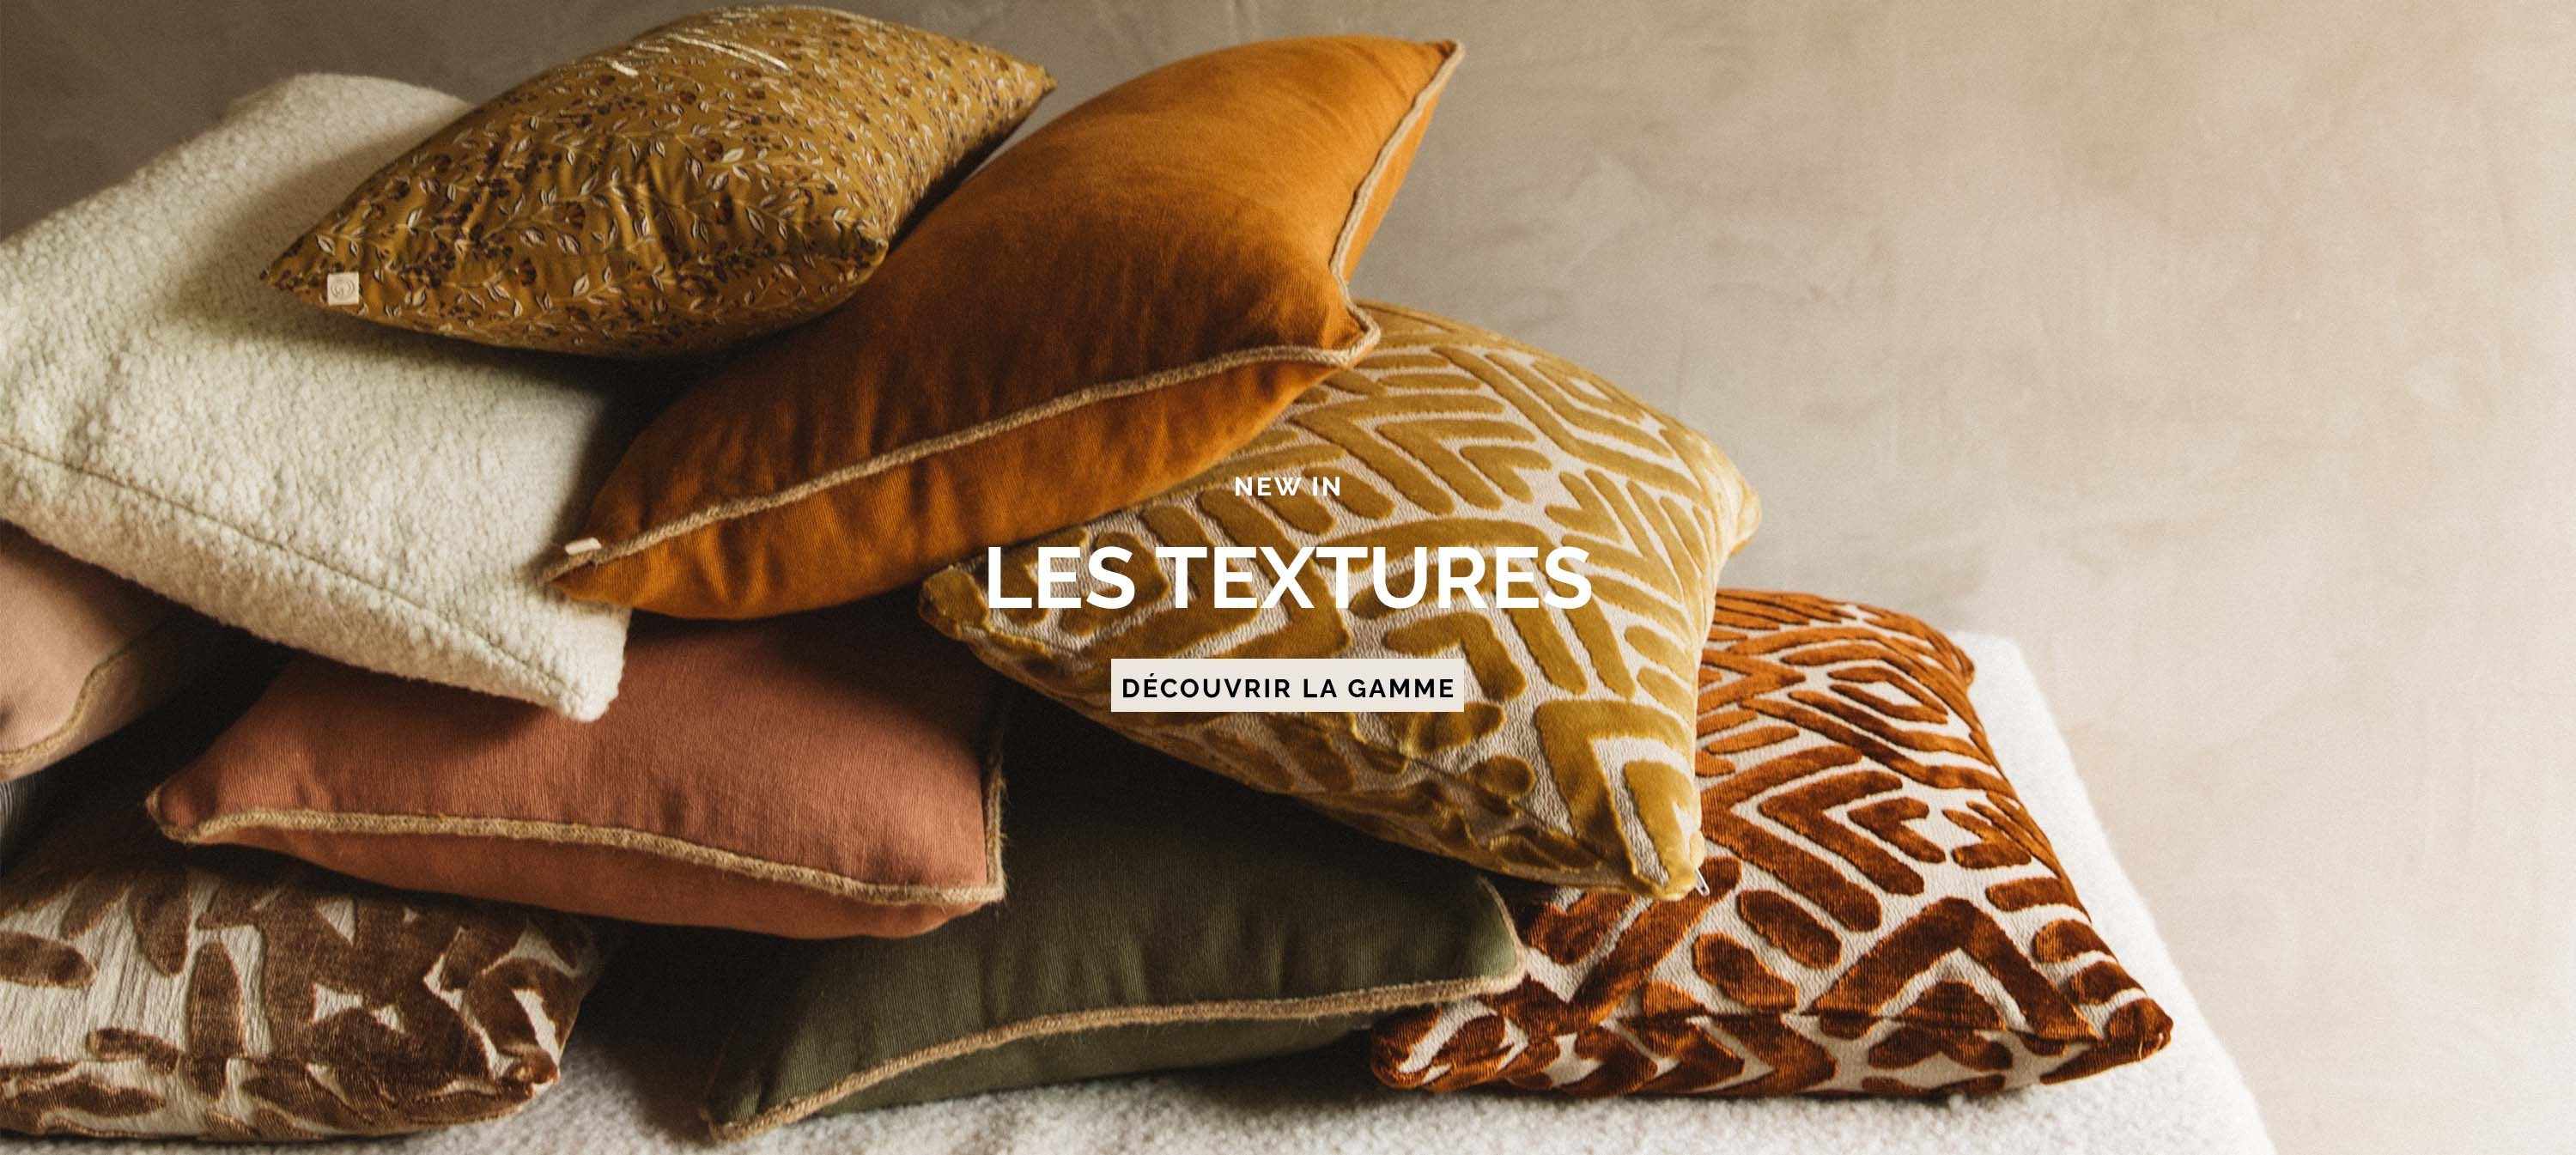 NEW IN - LES TEXTURES